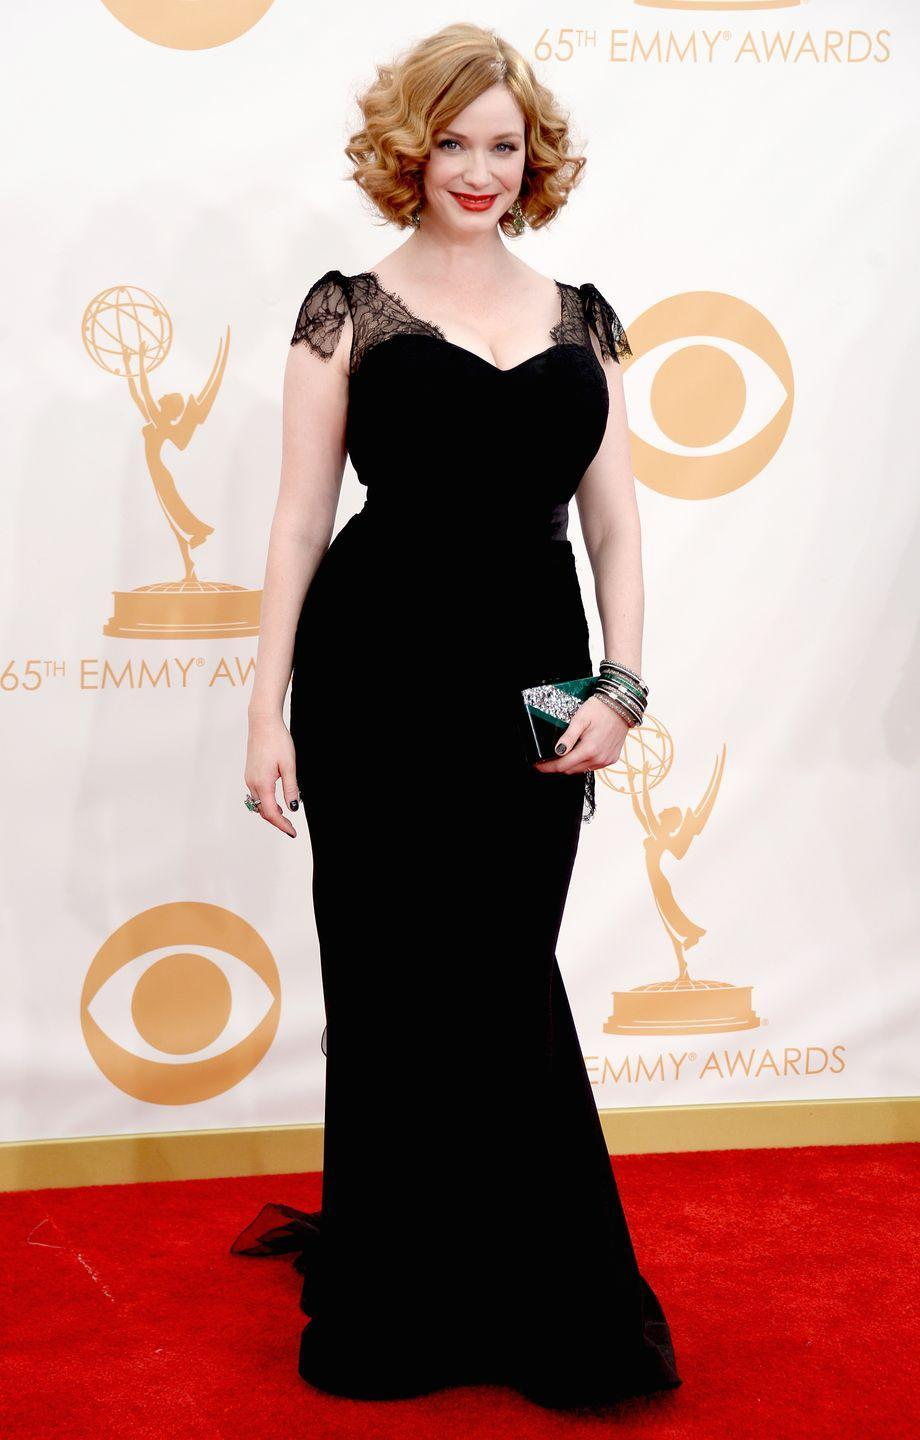 """<p>The <em>Mad Men</em> star revealed she had trouble finding a dress for the award seasons because she's a UK size 14. </p><p>""""People have been saying some nice, wonderful things about me. Yet not one designer in town will loan me a dress,"""" the actress told the <em><a href=""""http://www.dailyrecord.co.uk/entertainment/celebrity/christina-hendricks-designers-wont-give-1068344"""" rel=""""nofollow noopener"""" target=""""_blank"""" data-ylk=""""slk:Daily Record"""" class=""""link rapid-noclick-resp"""">Daily Record</a></em>. <br></p><p>""""They only lend out a size 0 or 2. So I'm still struggling for someone to give me a darn dress. This has always been my size. I've worked on other shows with this same size but <em>Mad Men </em>celebrates it and that is nice.""""<br></p><p><span class=""""redactor-invisible-space"""">Despite feeling excluded from the fashion industry for her curvaceous figure, she added that she had never been pressured to lose weight for a role. </span></p>"""